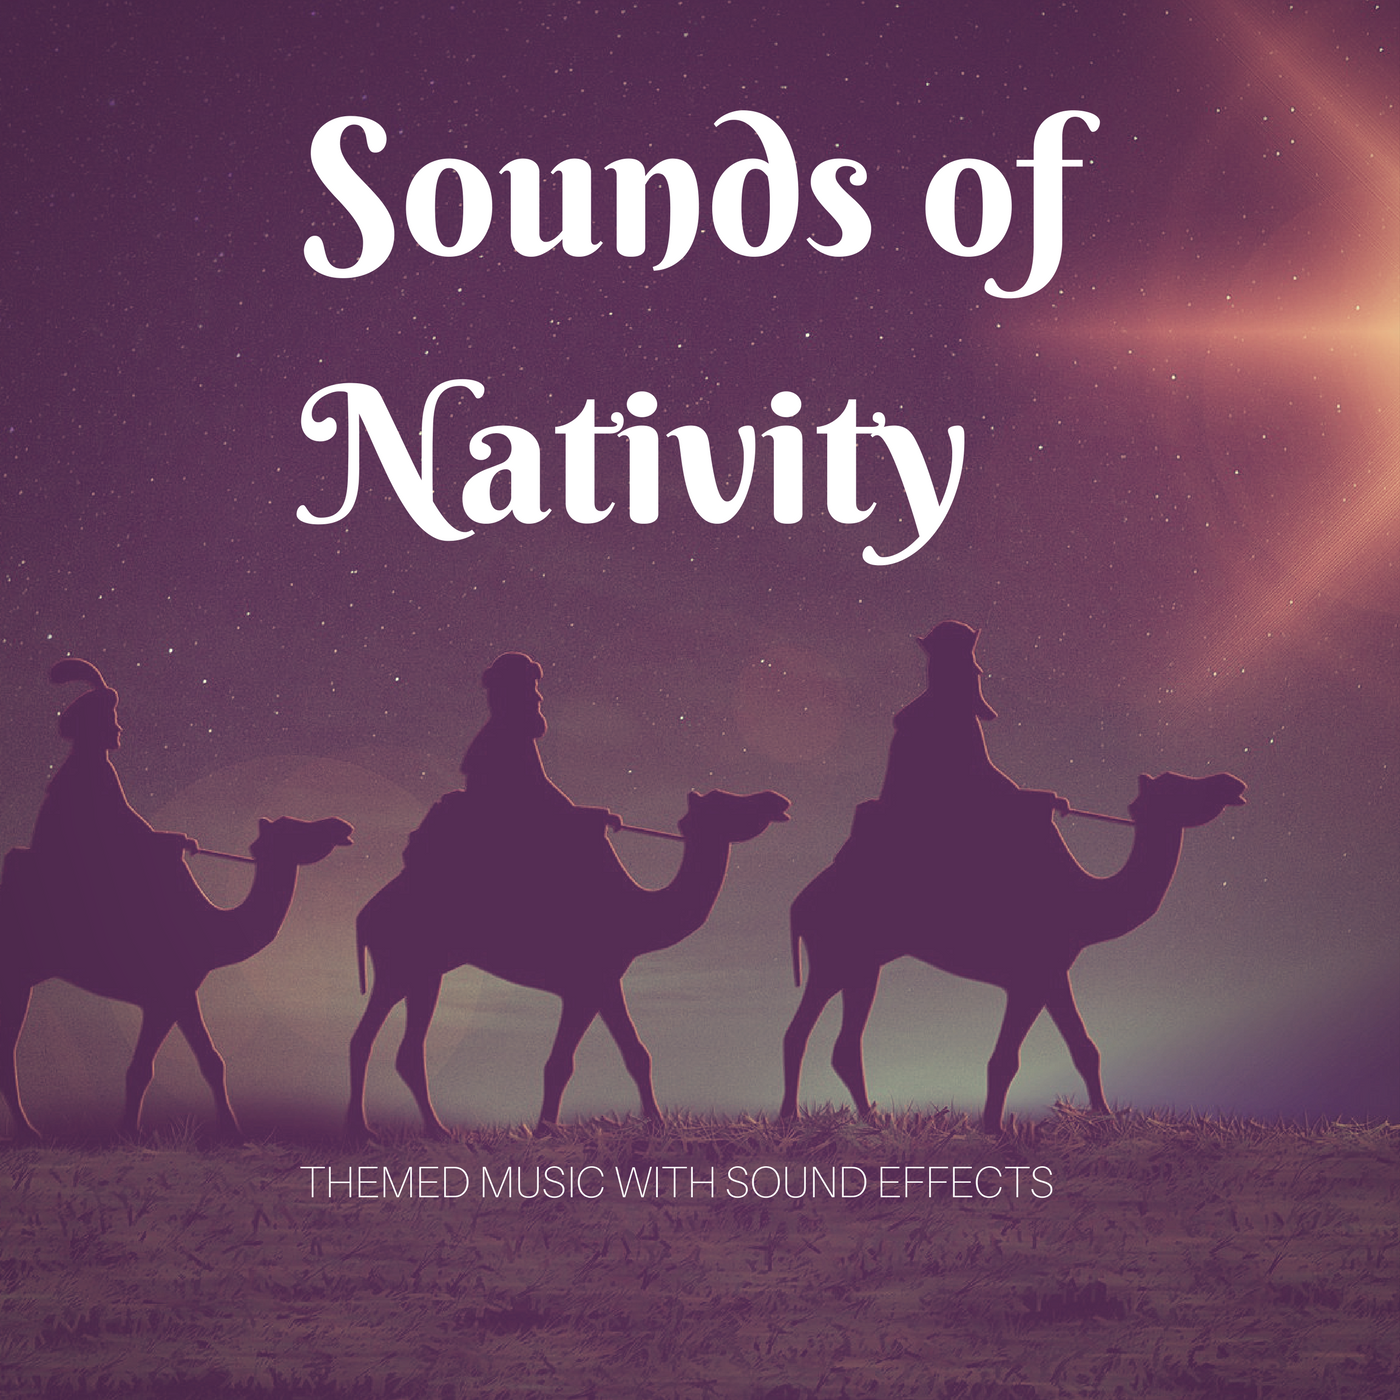 Sounds of Nativity.png